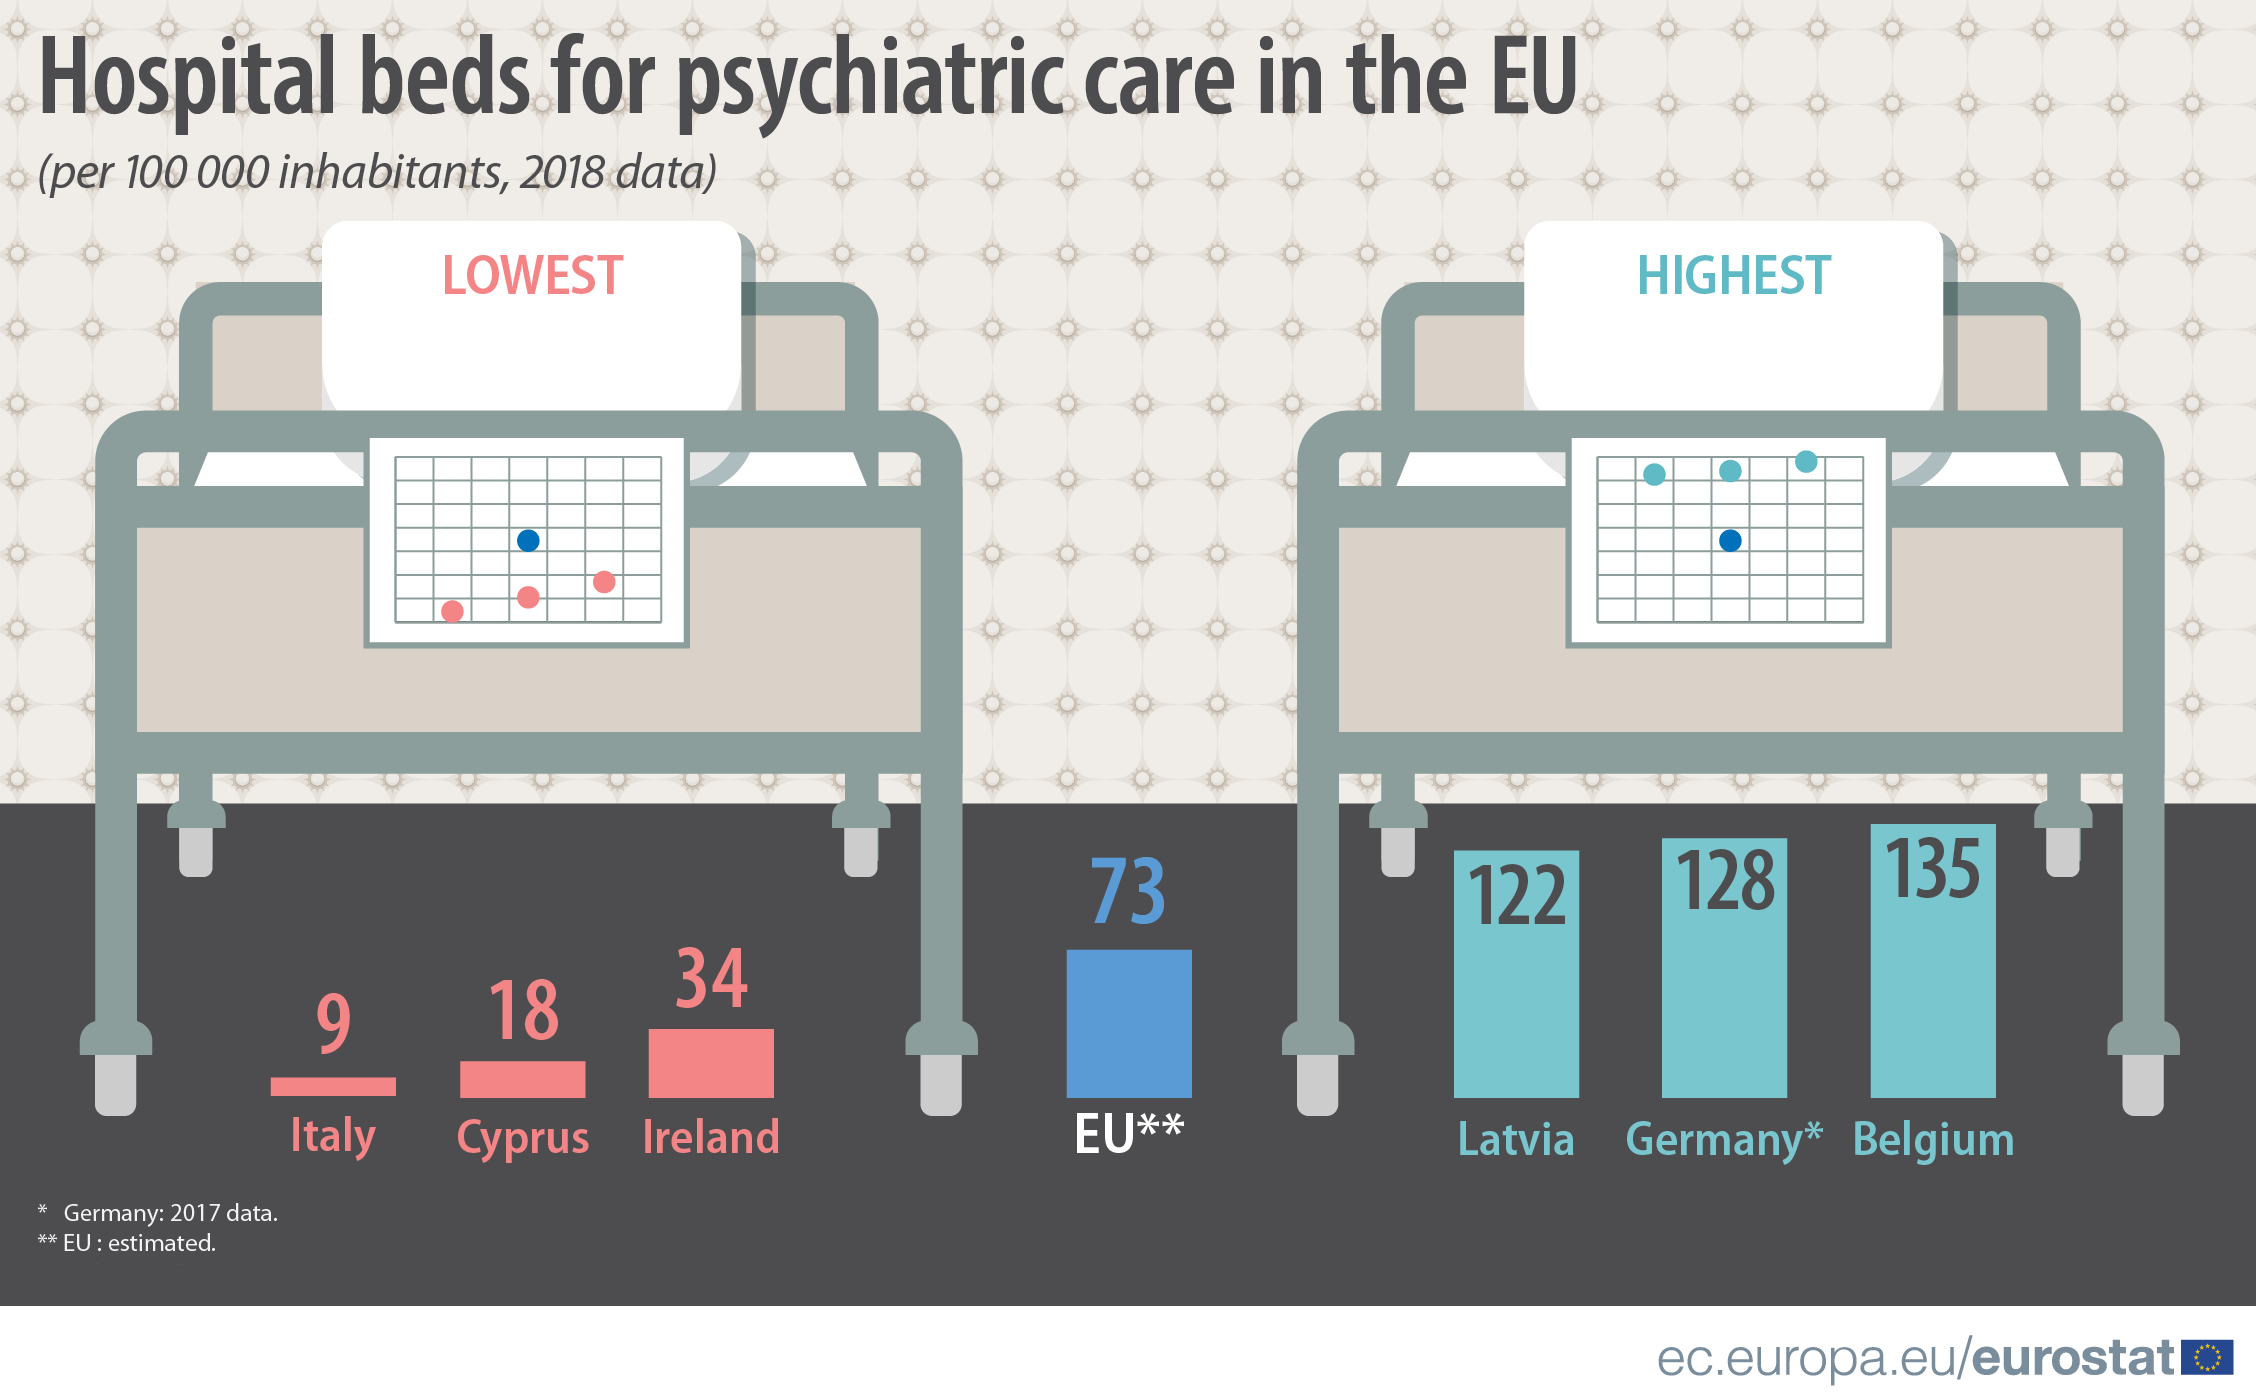 Infographic: Hospital beds for psychiatric care in the EU